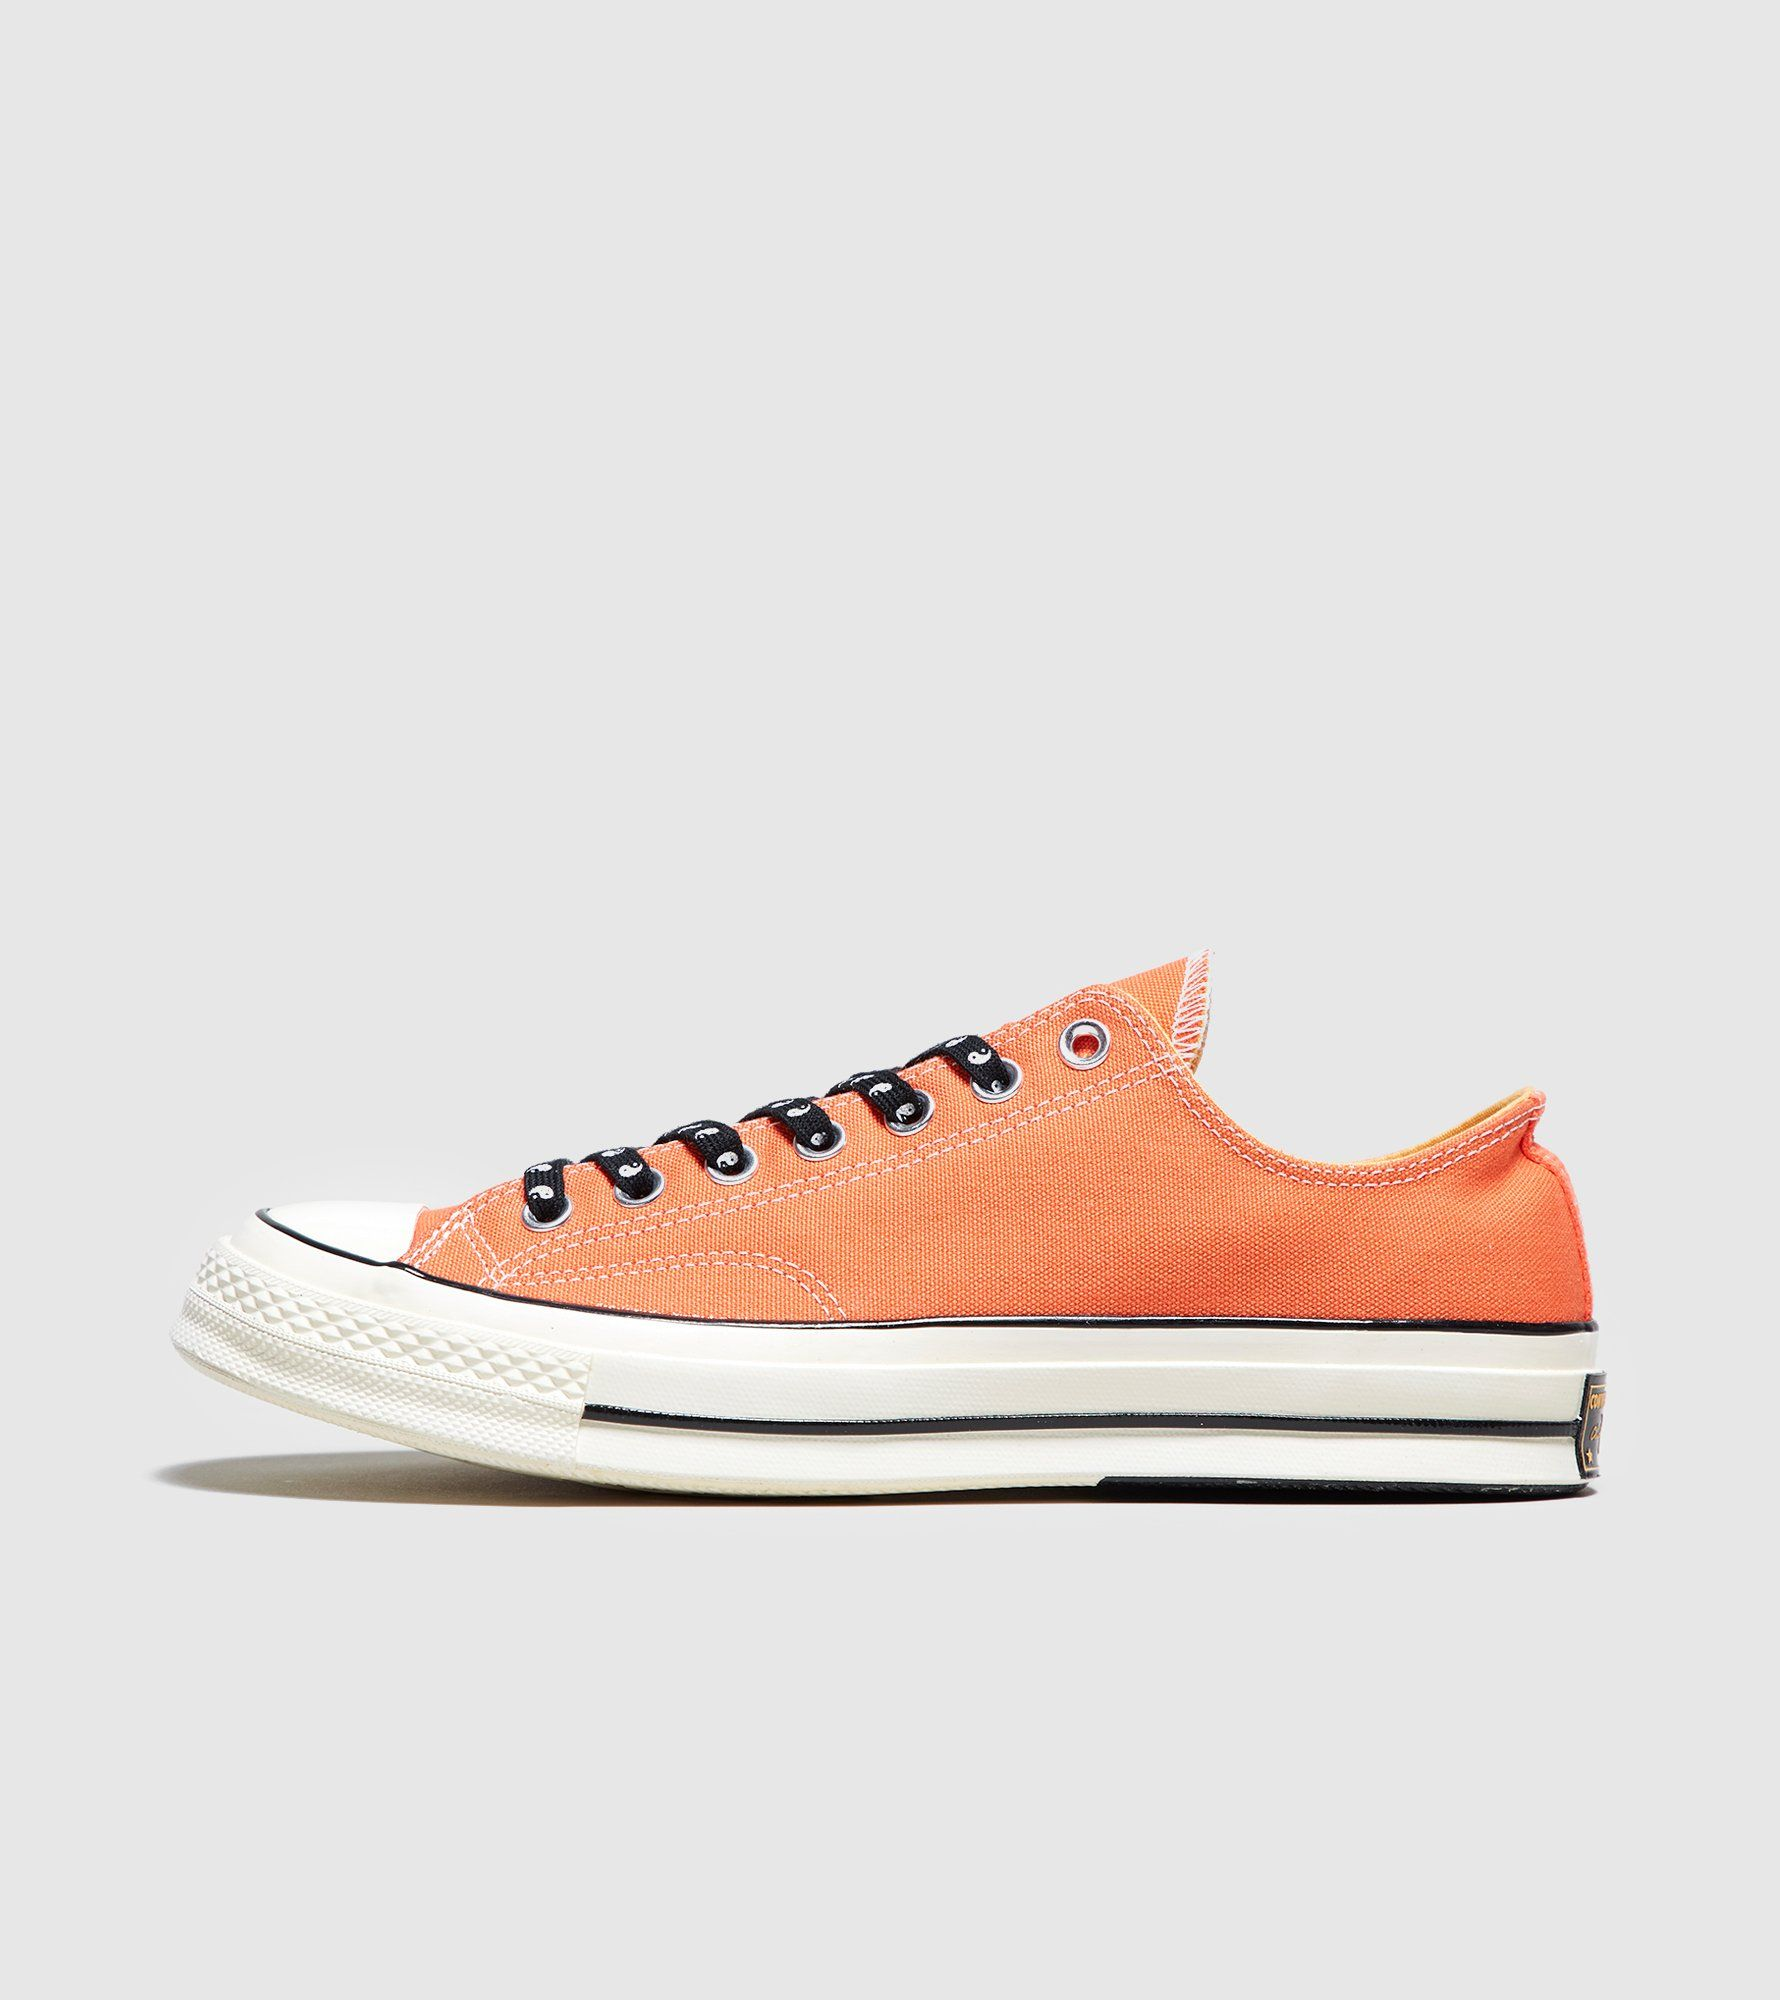 Converse Chuck Taylor All Star 70 Ox 'Psy-Kicks'